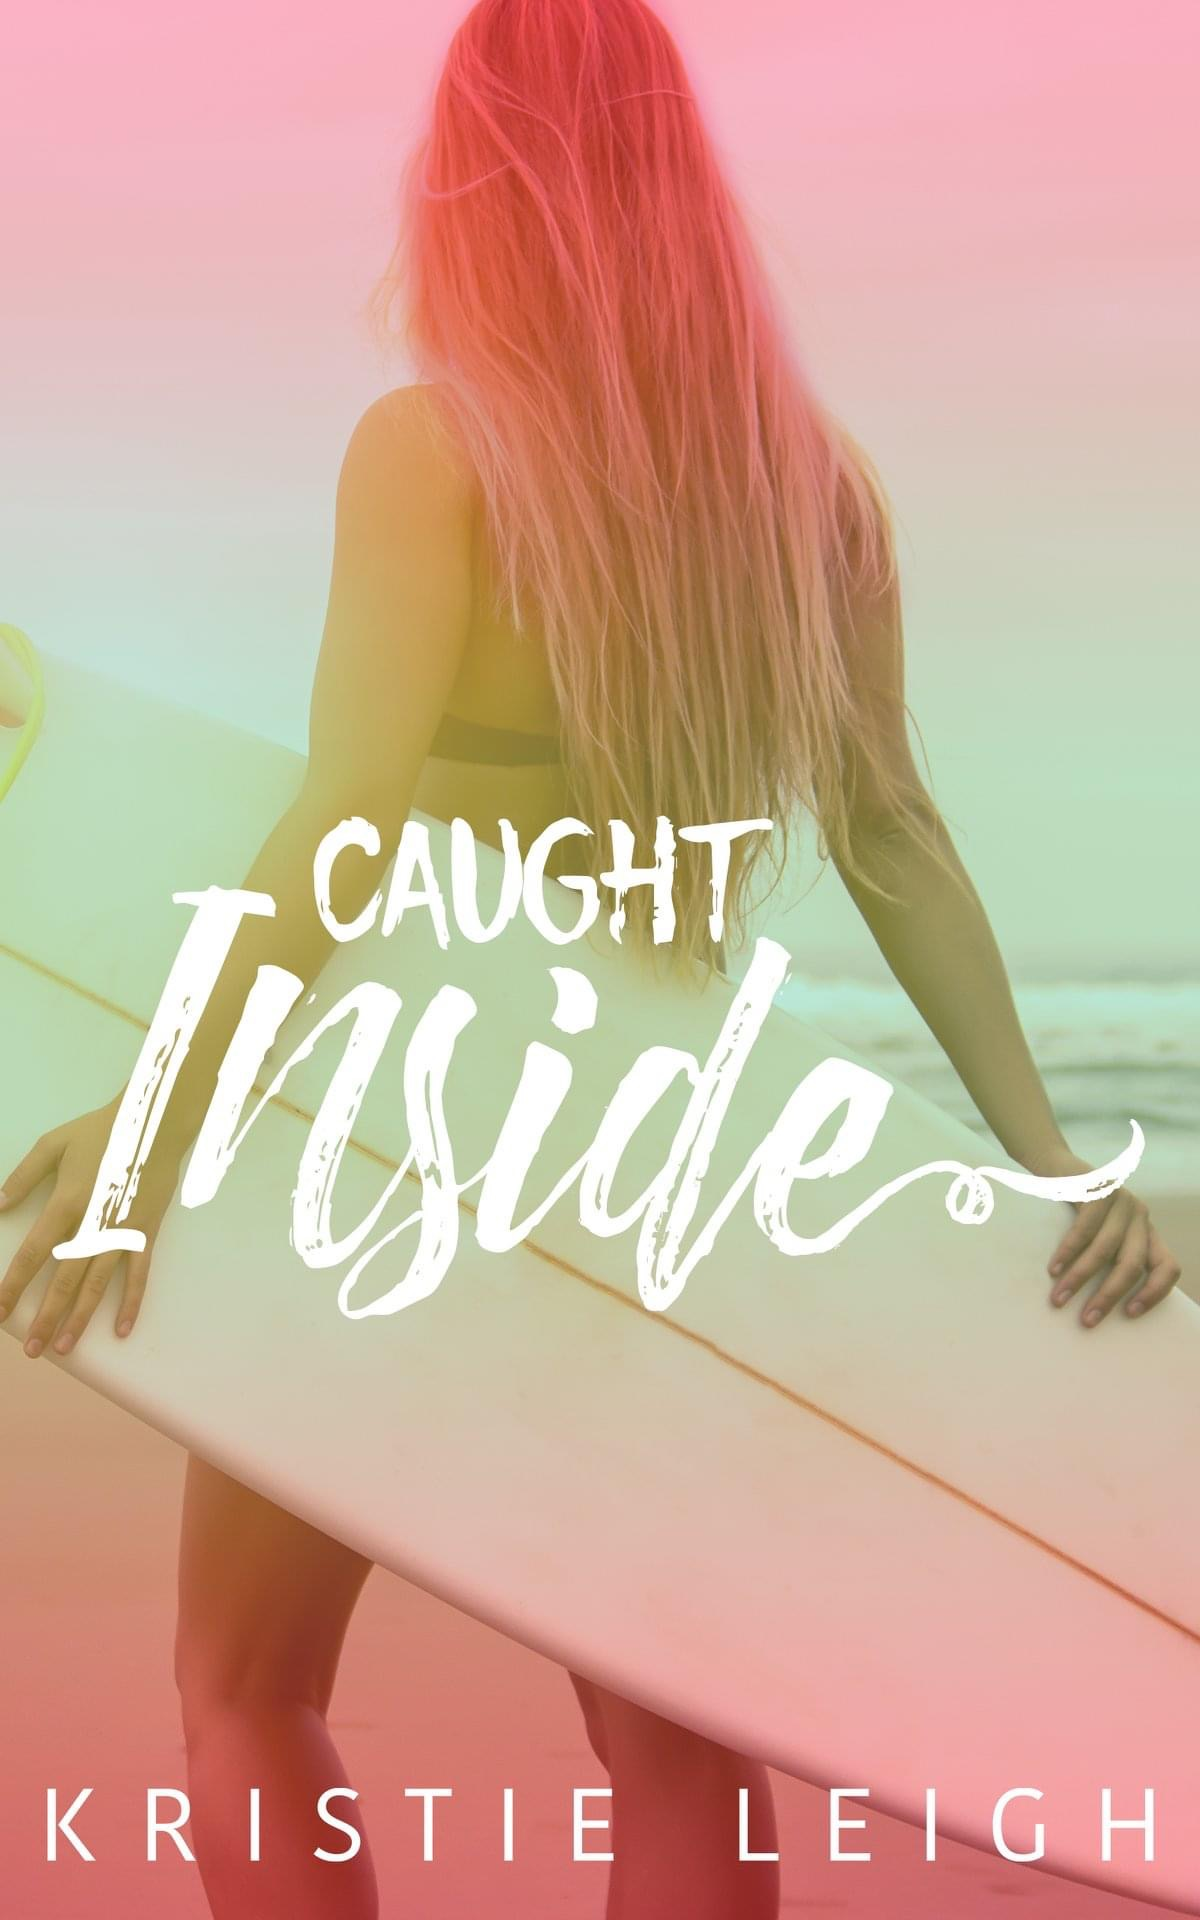 Caught Inside - Kristie Leigh